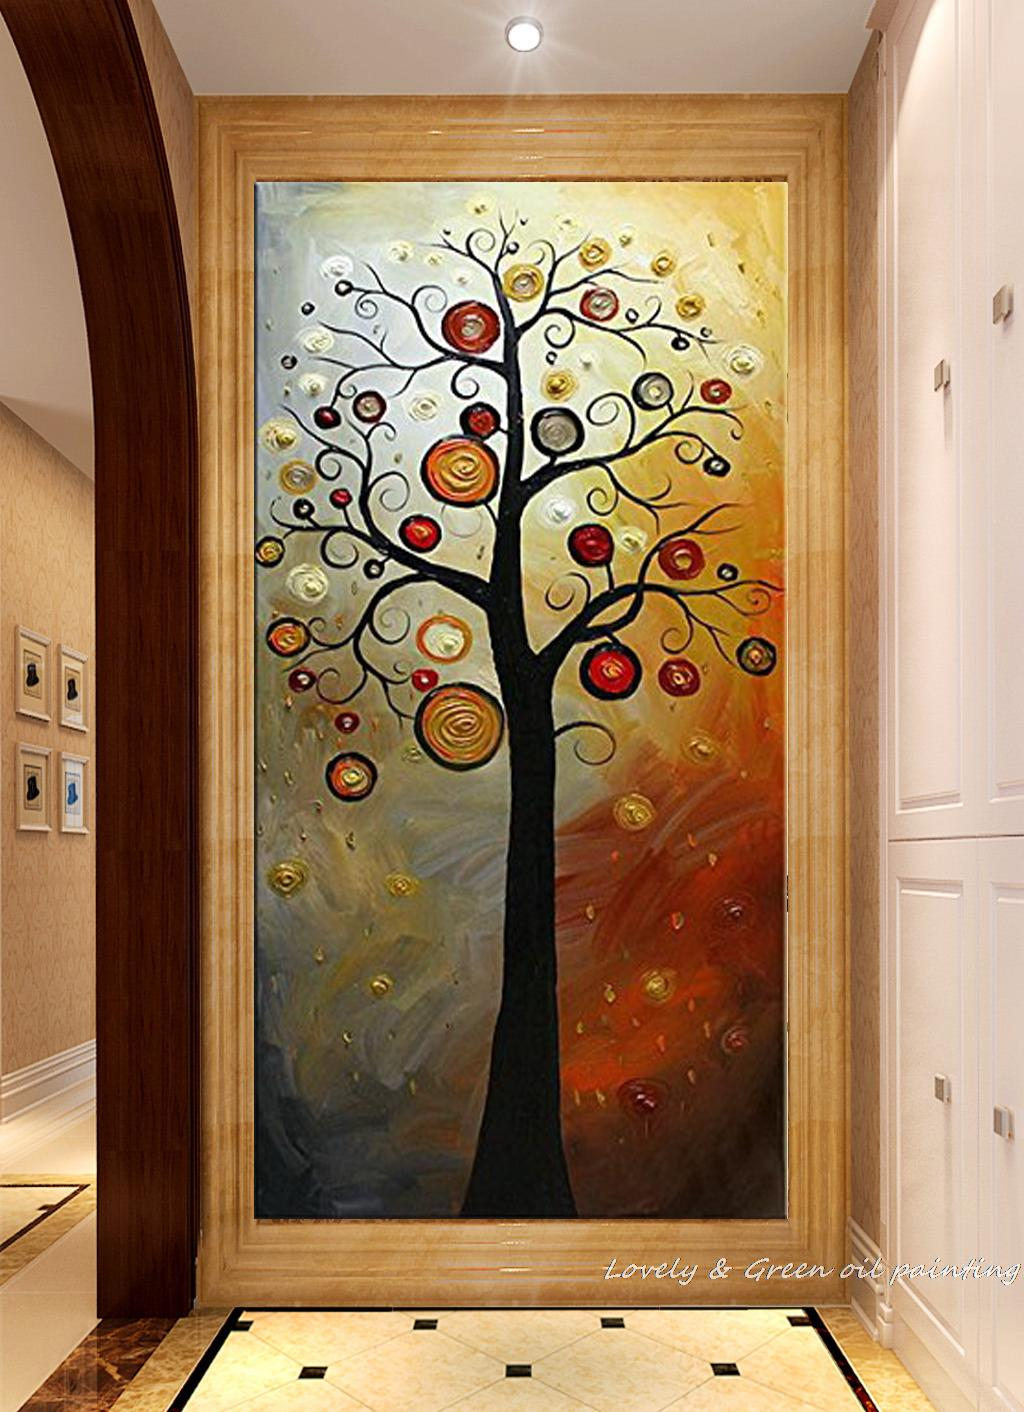 Us 27 9 38 Off Pure Hand Painted Abstract Money Tree Oil Painting On Canvas Wall Art Sets Modern Abstract Pictures On The Wall For Living Room In